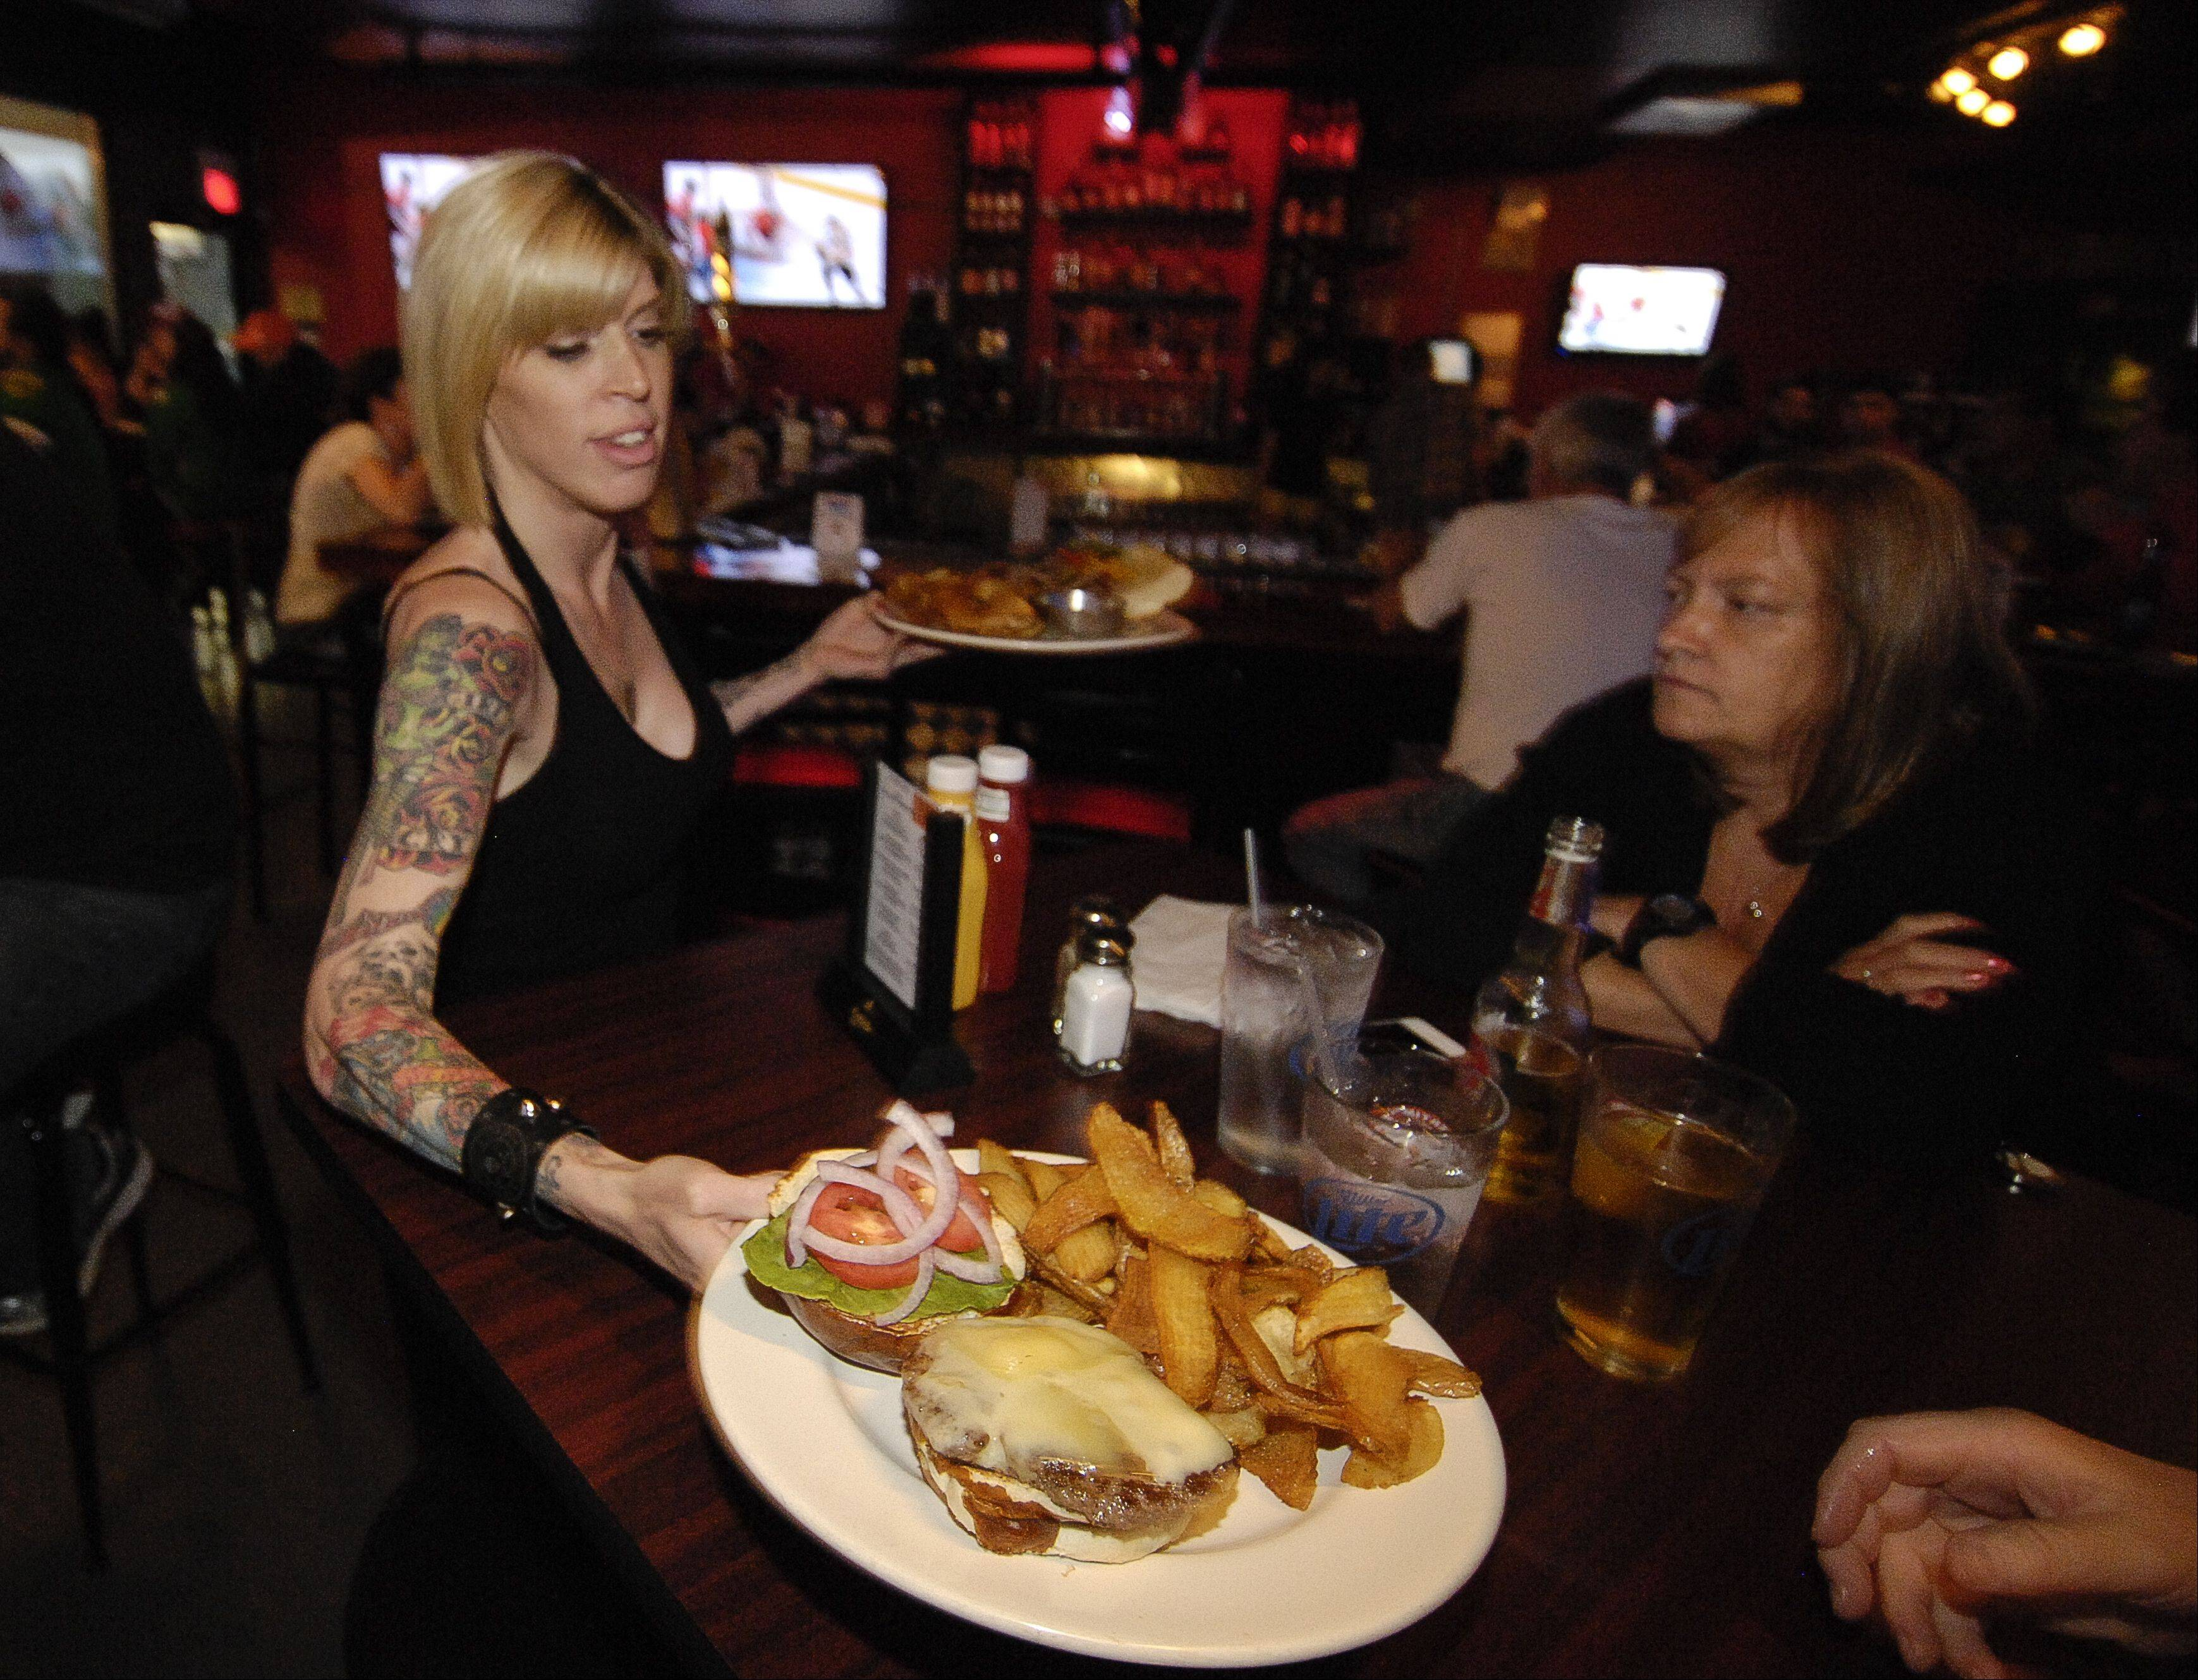 Miska Pifke serves dinner to Blackhawks fans watching the game at Overtime Bar & Grill in Lombard.